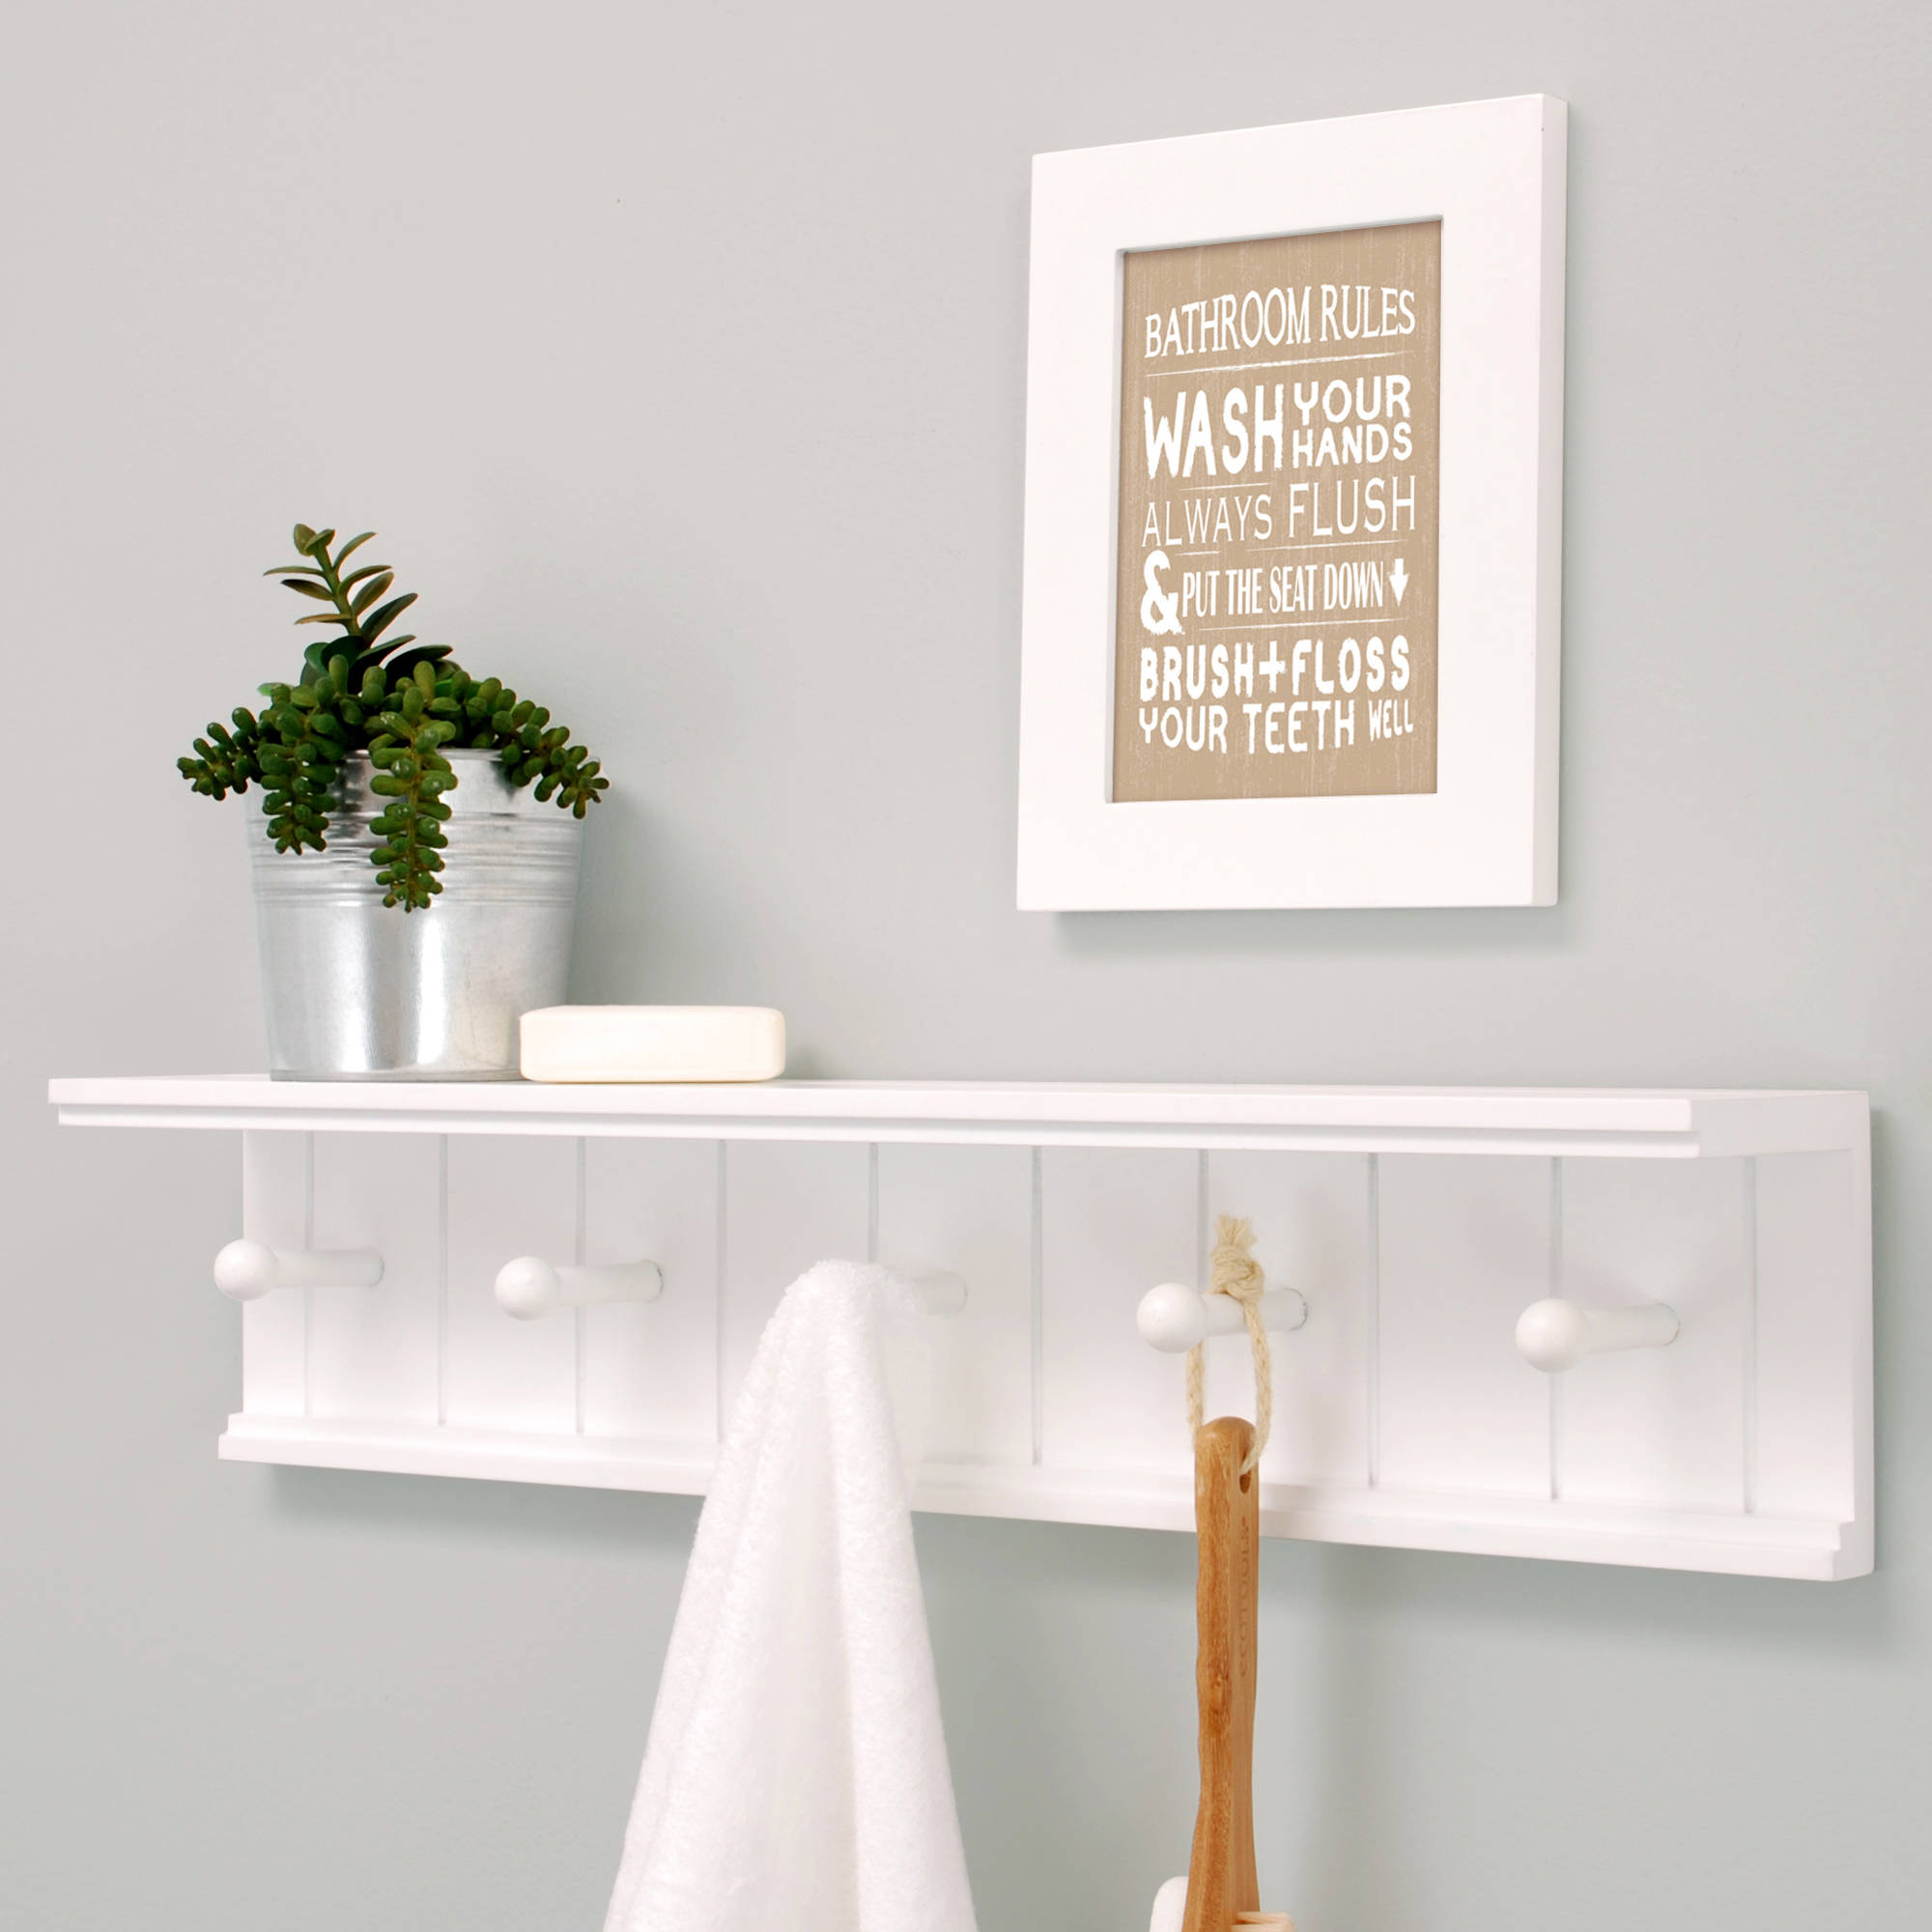 kiera grace kian wall shelf with pegs white floating hooks long narrow computer table granite bracket bathroom over sink cabinets jacket hanger rack hanging shelves reclaimed barn